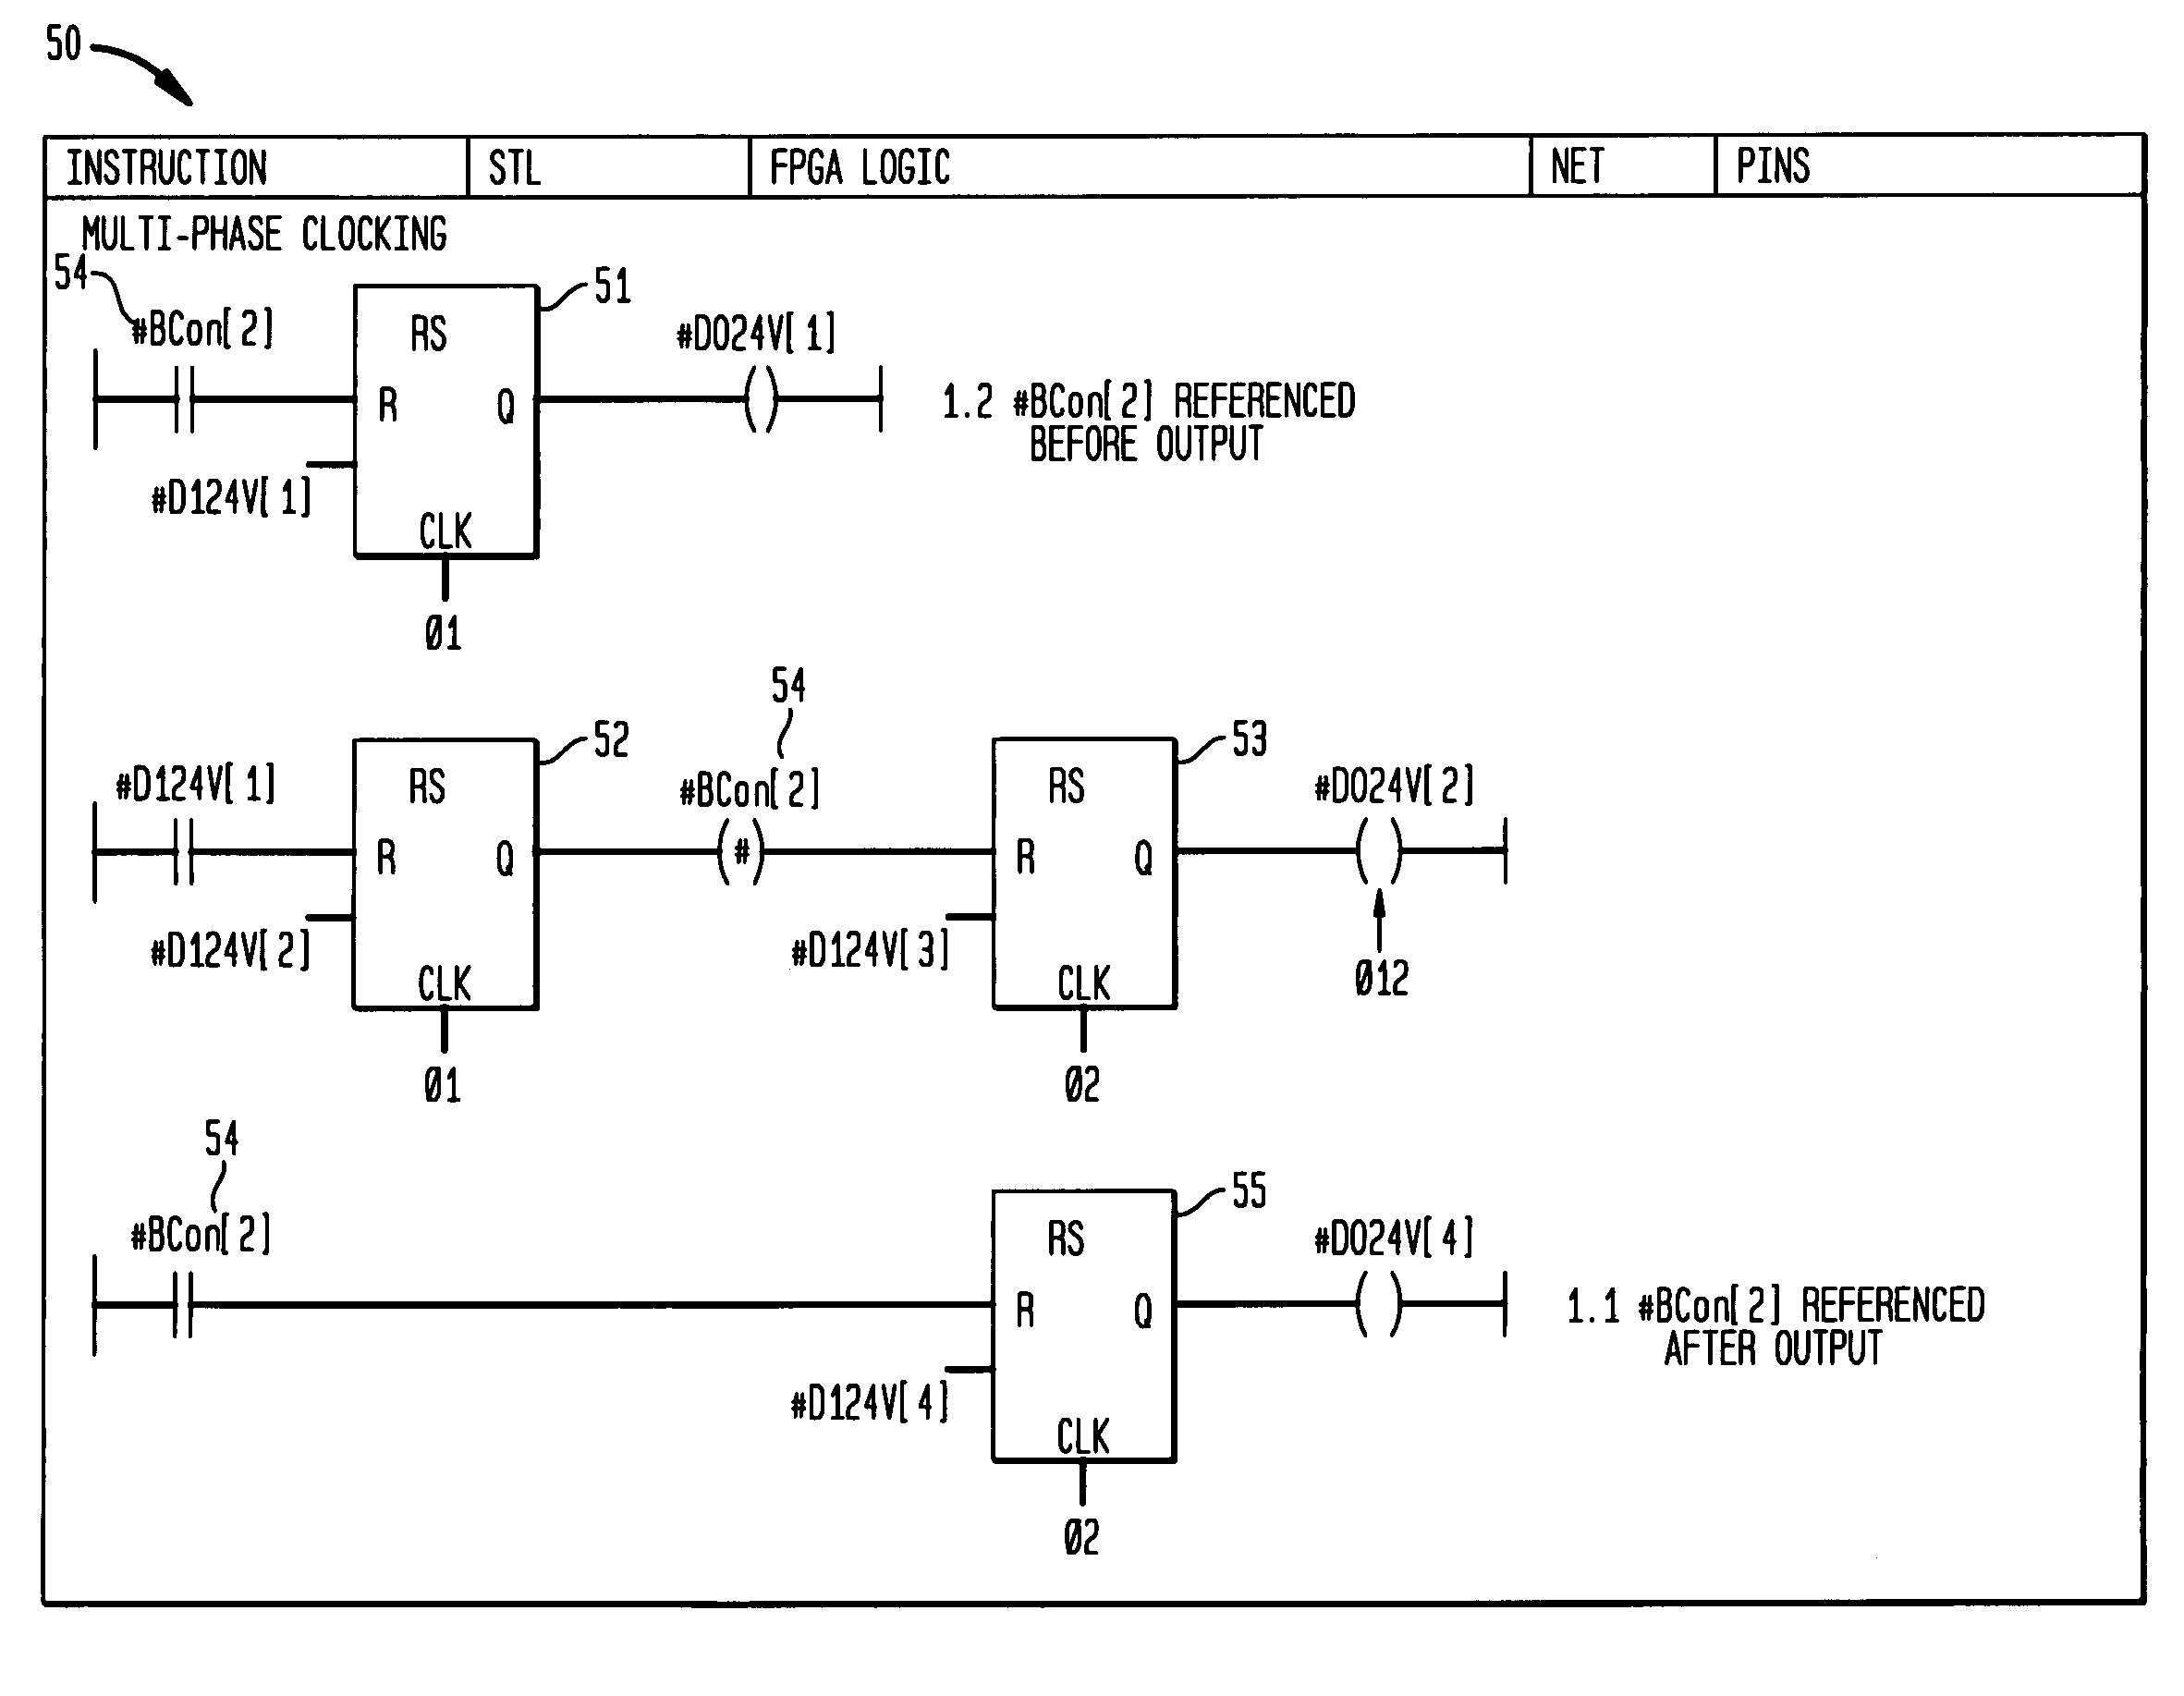 Car parking using plc ladder diagram ponent relay logic circuits car parking using plc ladder diagram ponent relay logic circuits examples ladder puter history of car ccuart Image collections